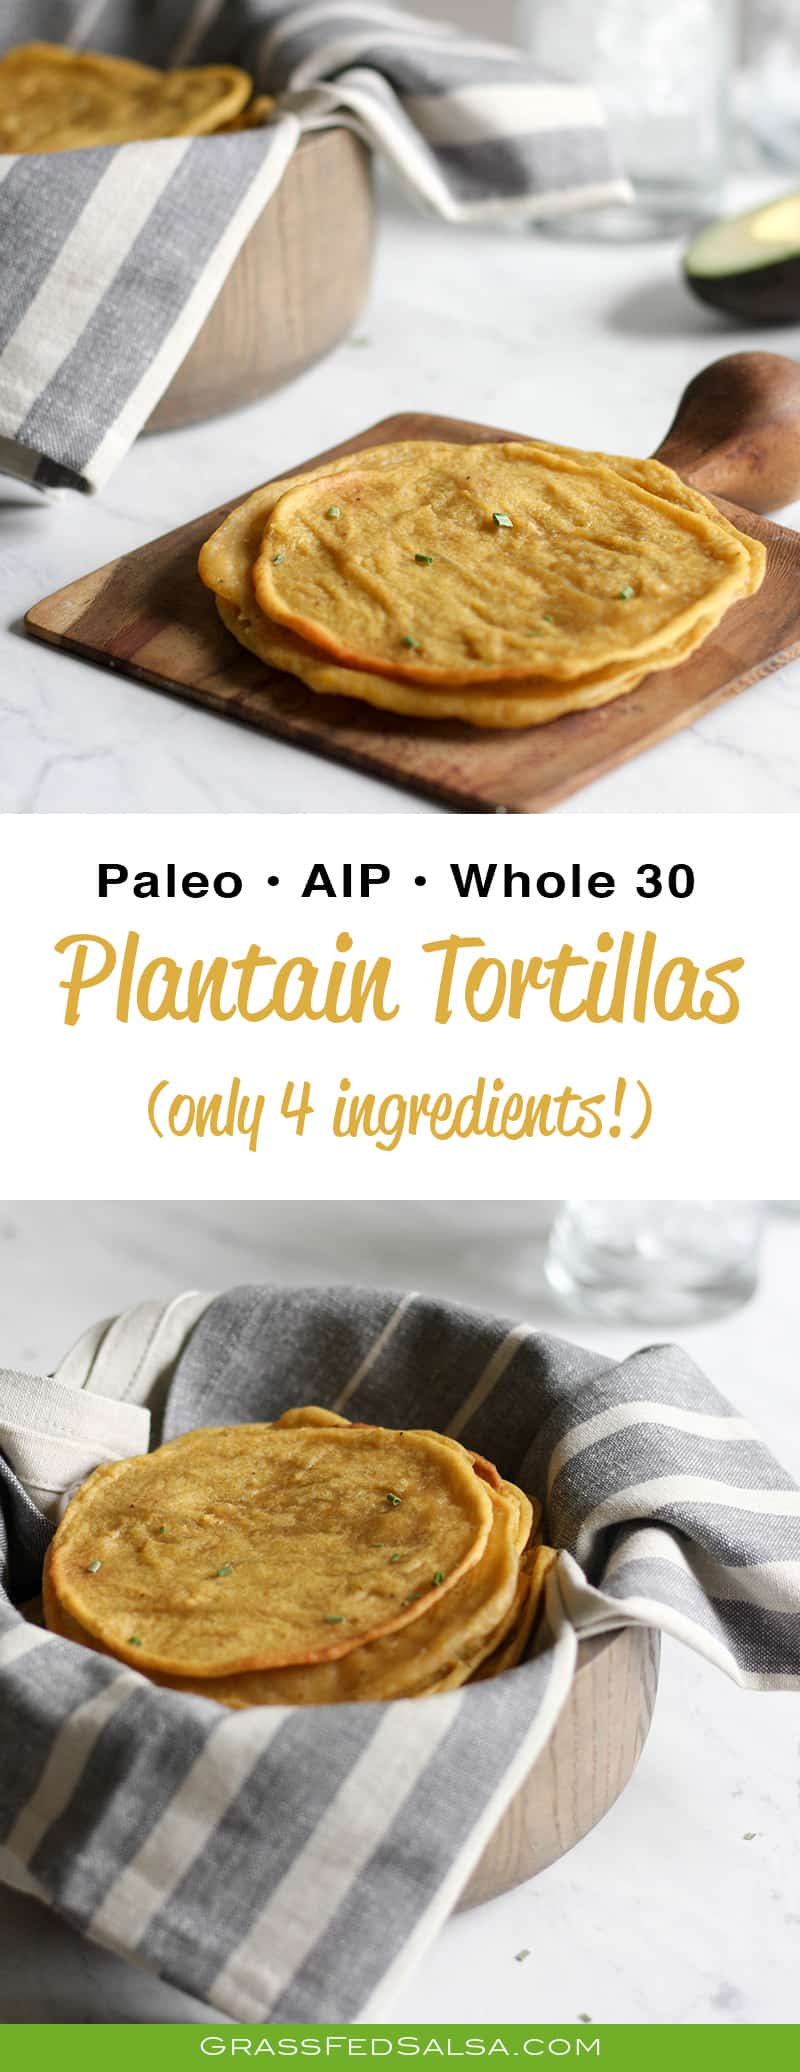 These Plantain Tortillas have only 4 ingredients and are quick and easy to make - no rolling or flipping on a skillet! They are pliable and puffy, and while they taste amazing, they're also #AIP, #Paleo, #Whole30, and #glutenfree!